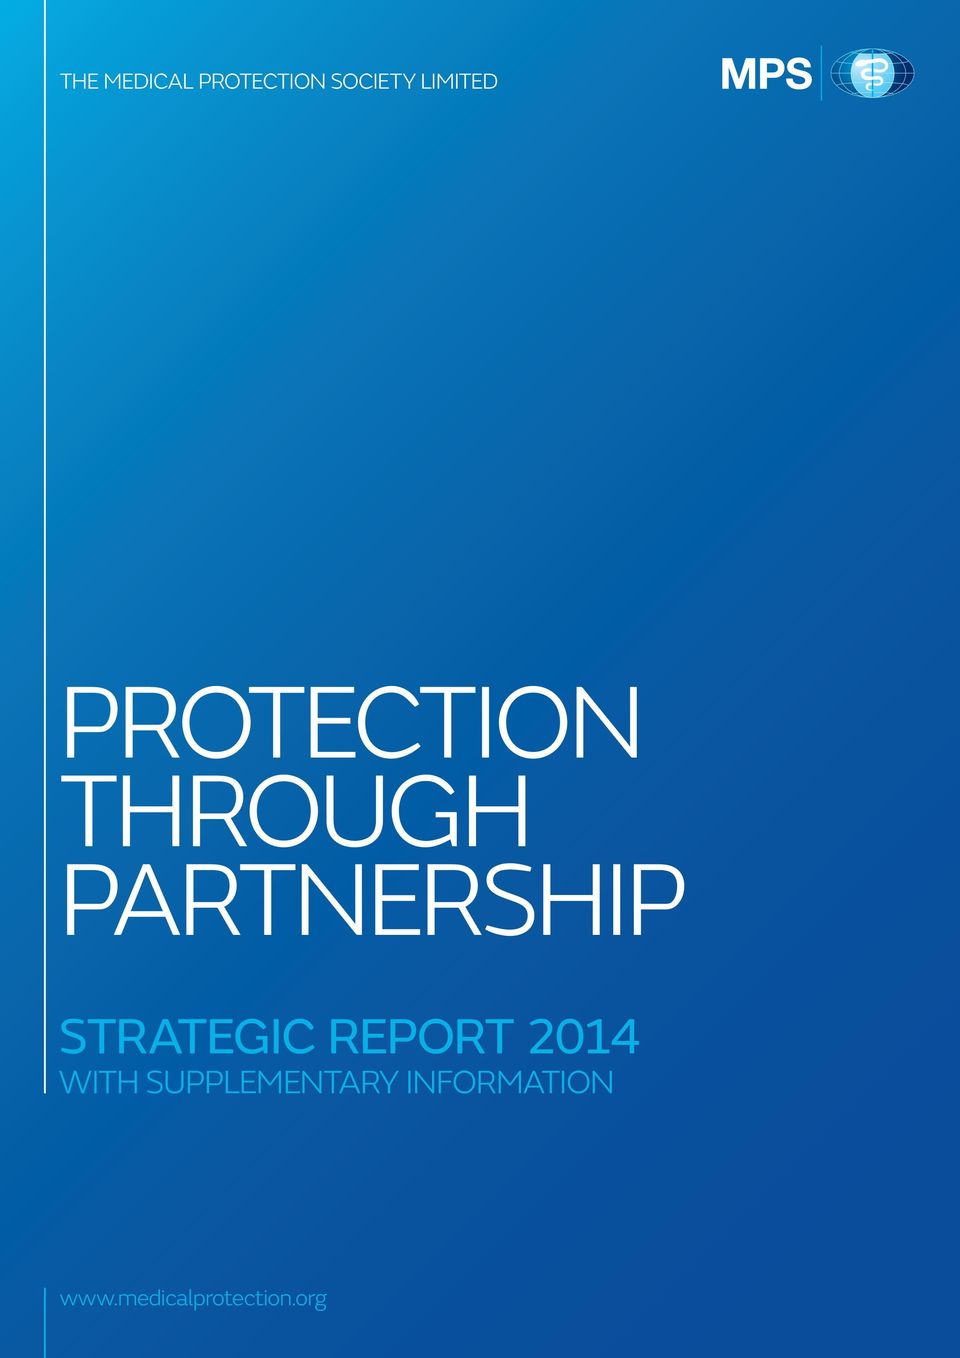 PARTNERSHIP STRATEGIC REPORT 2014